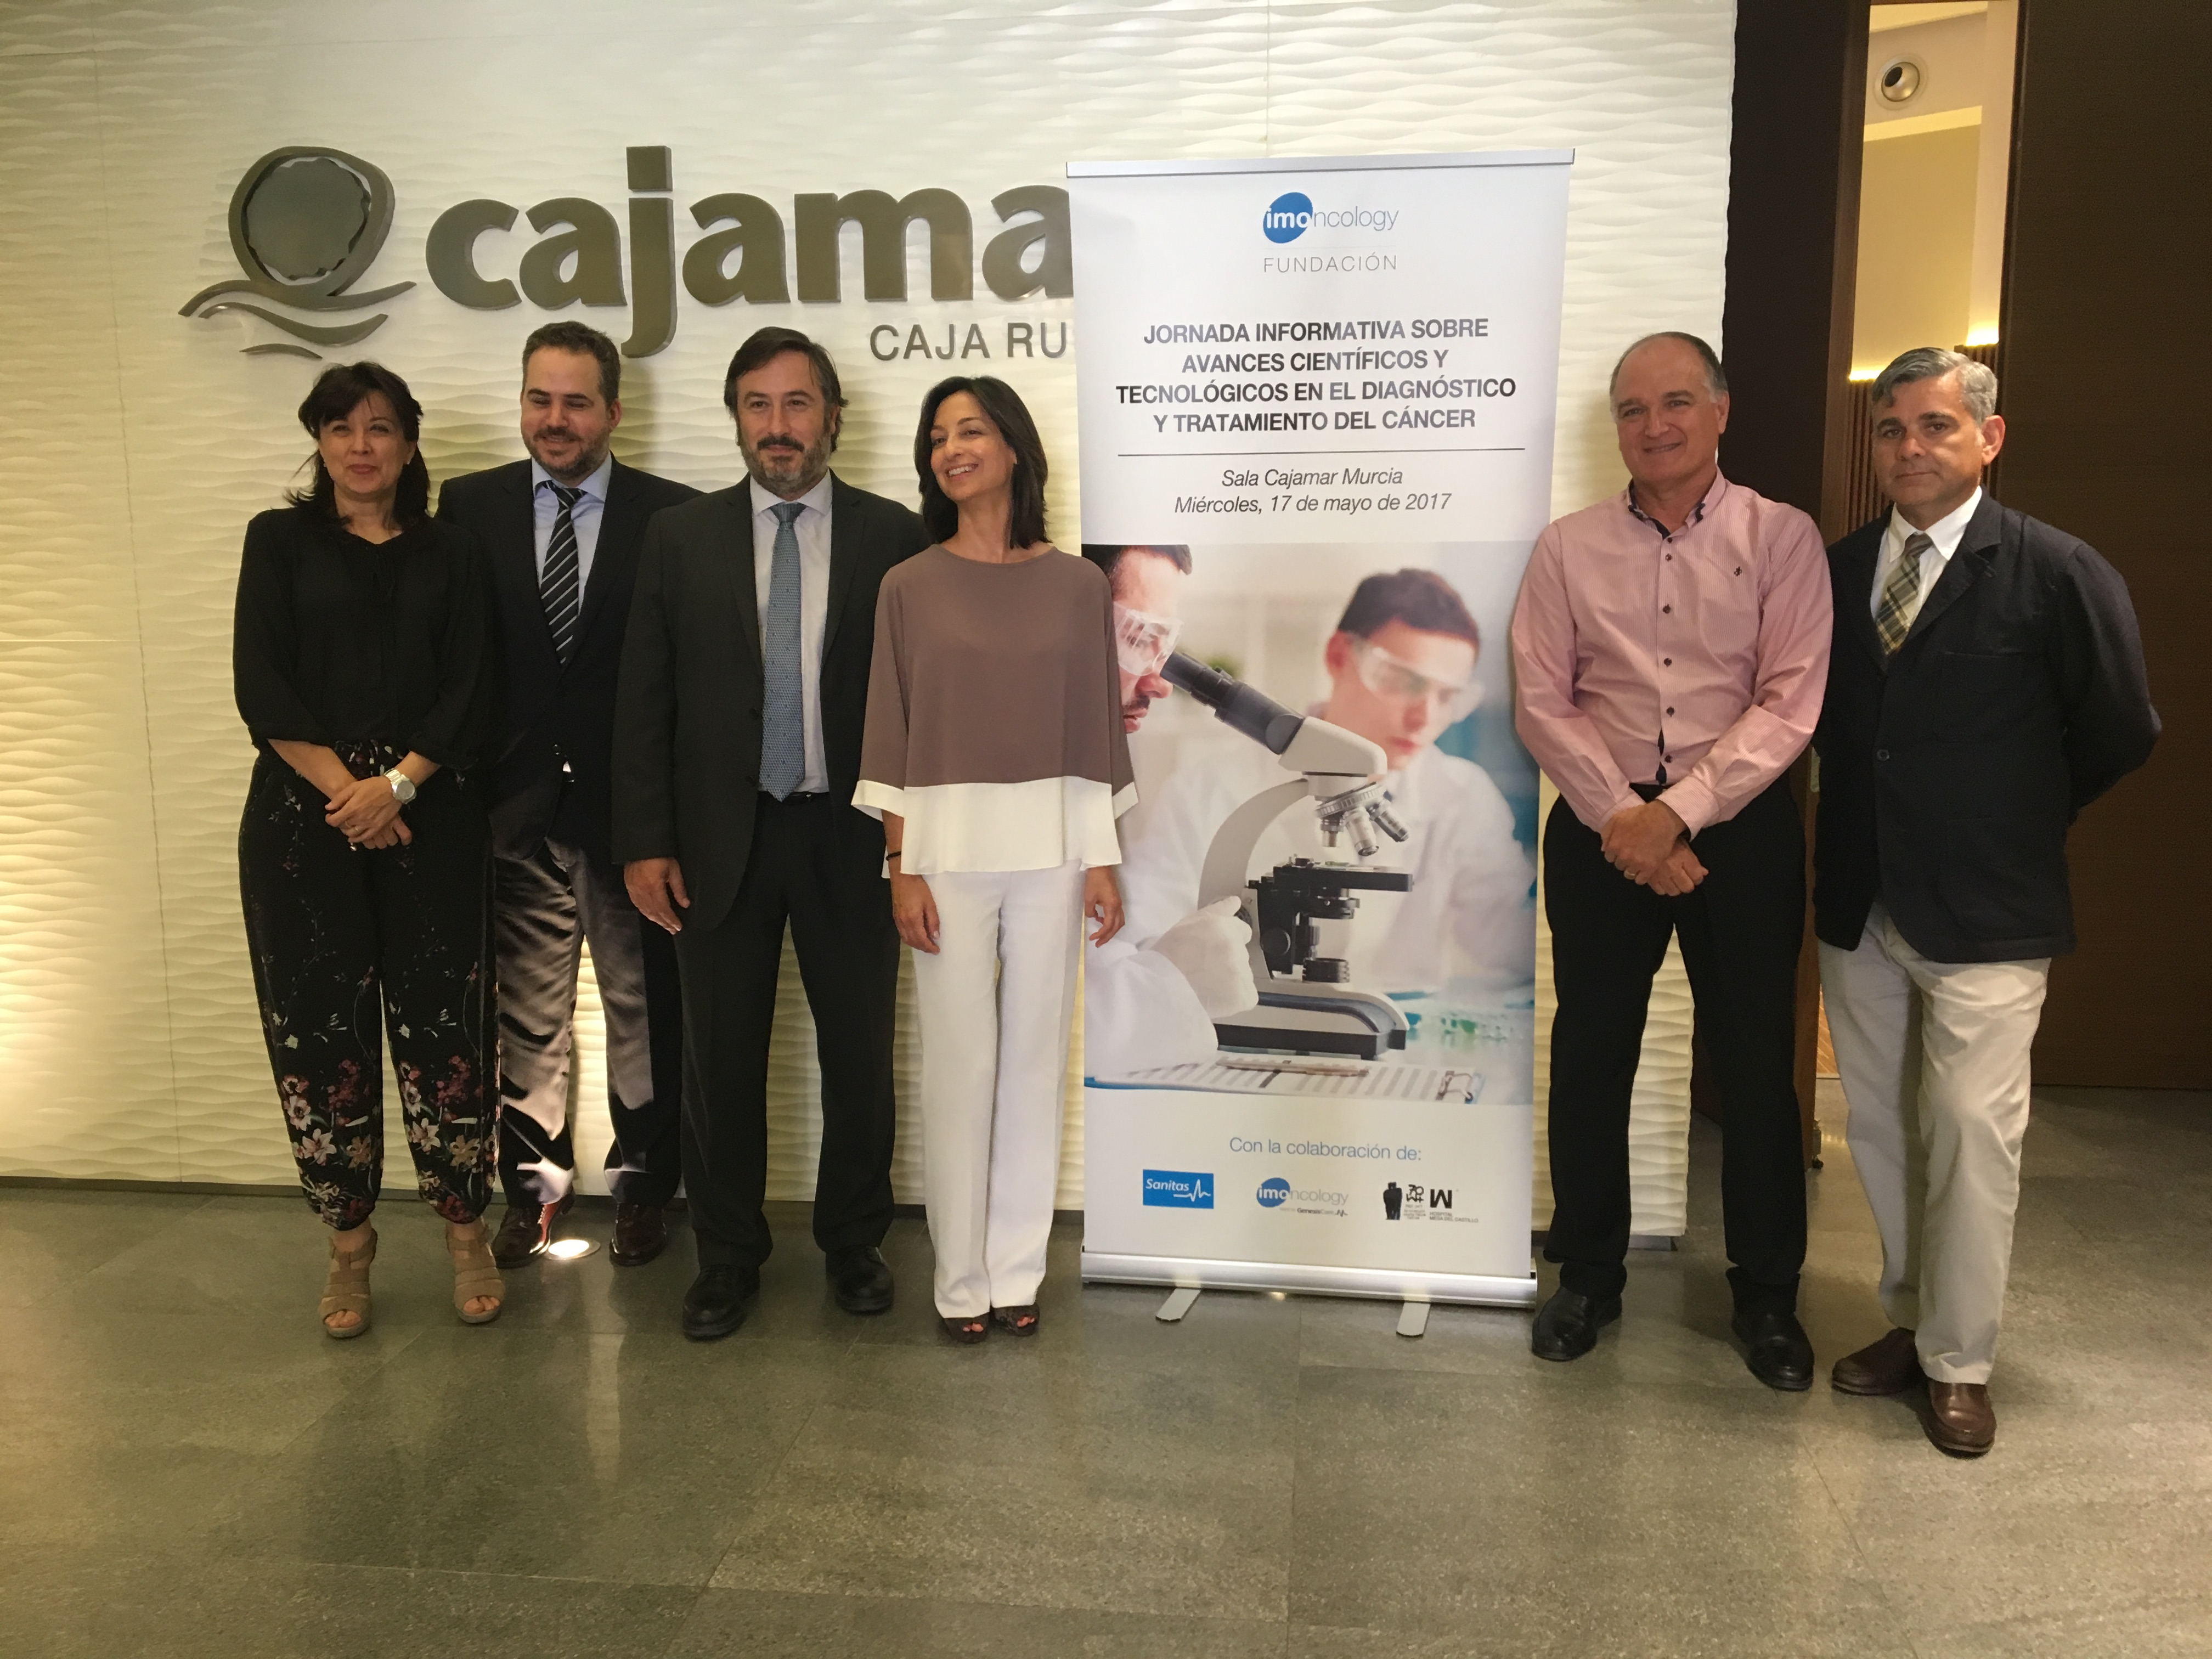 Murcia, una de las regiones con mayor incidencia de cáncer